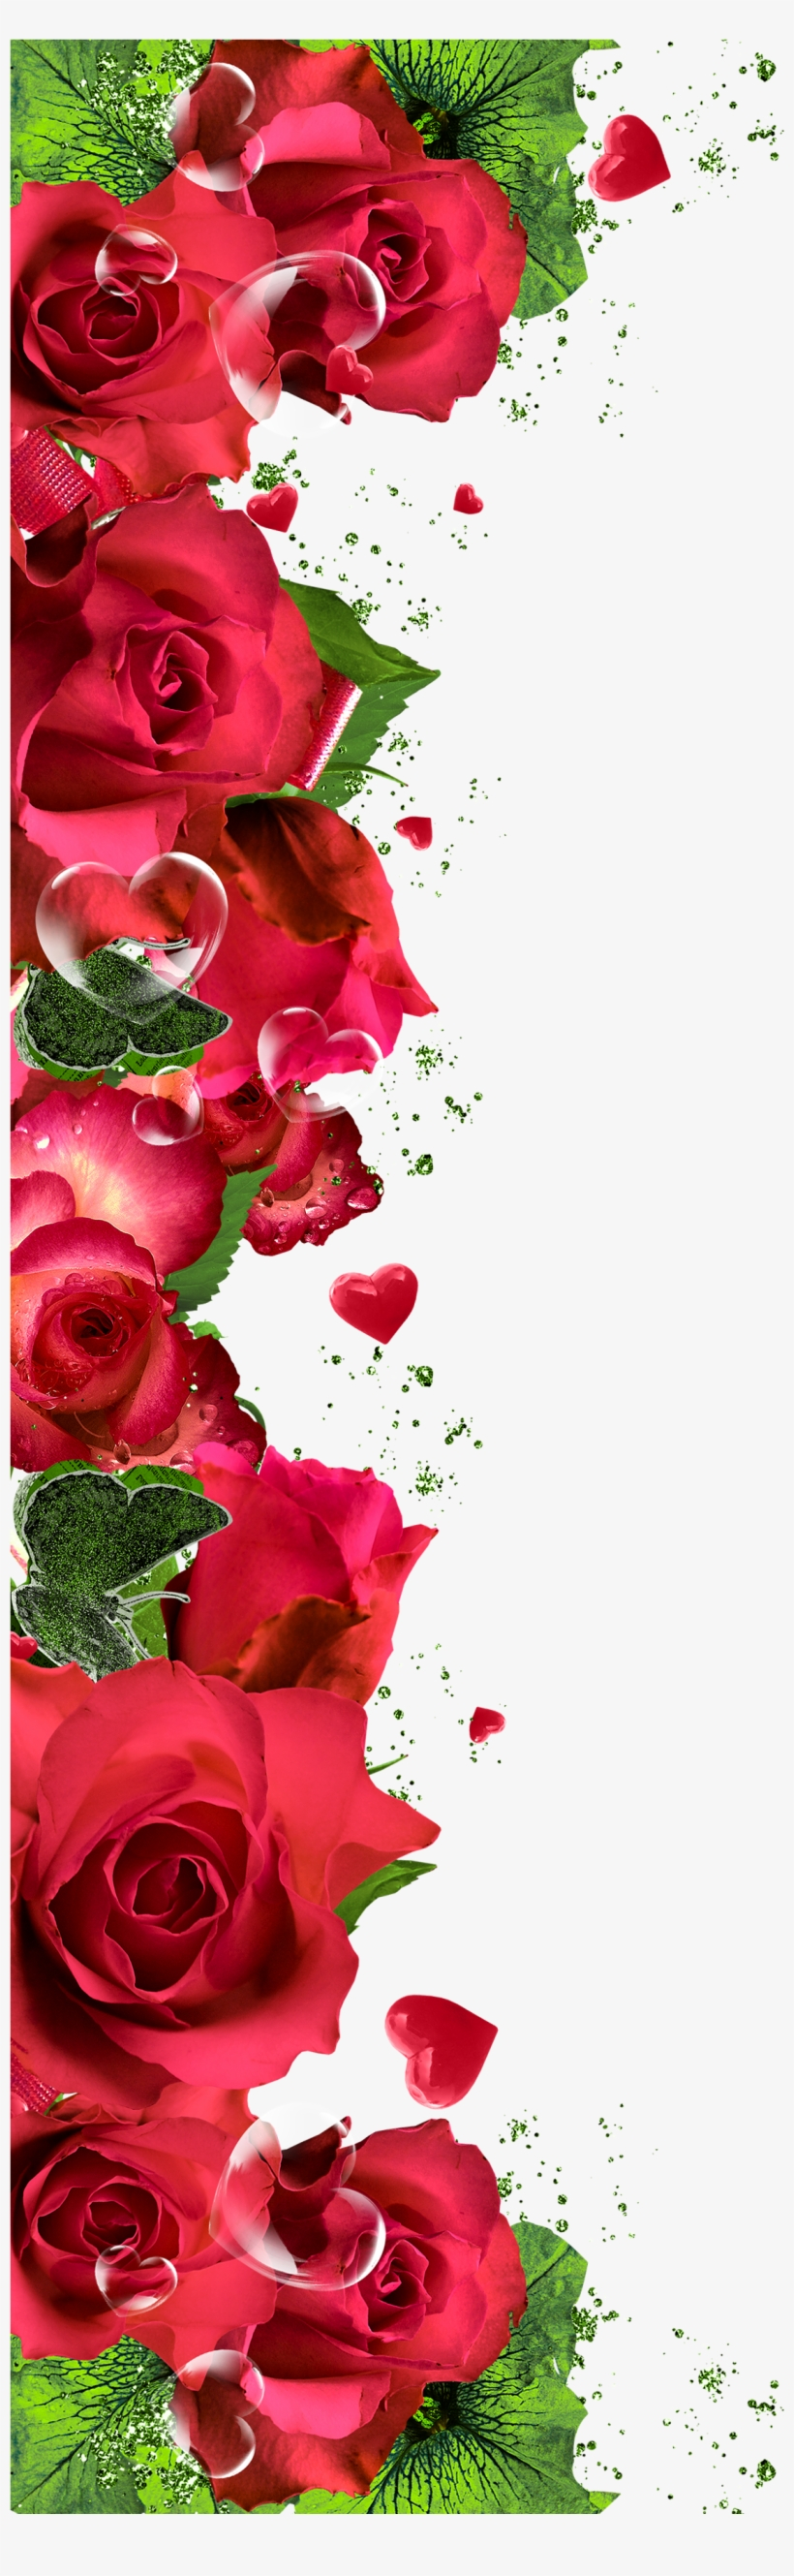 Rose Flower Borders Frames Png, transparent png #1528782